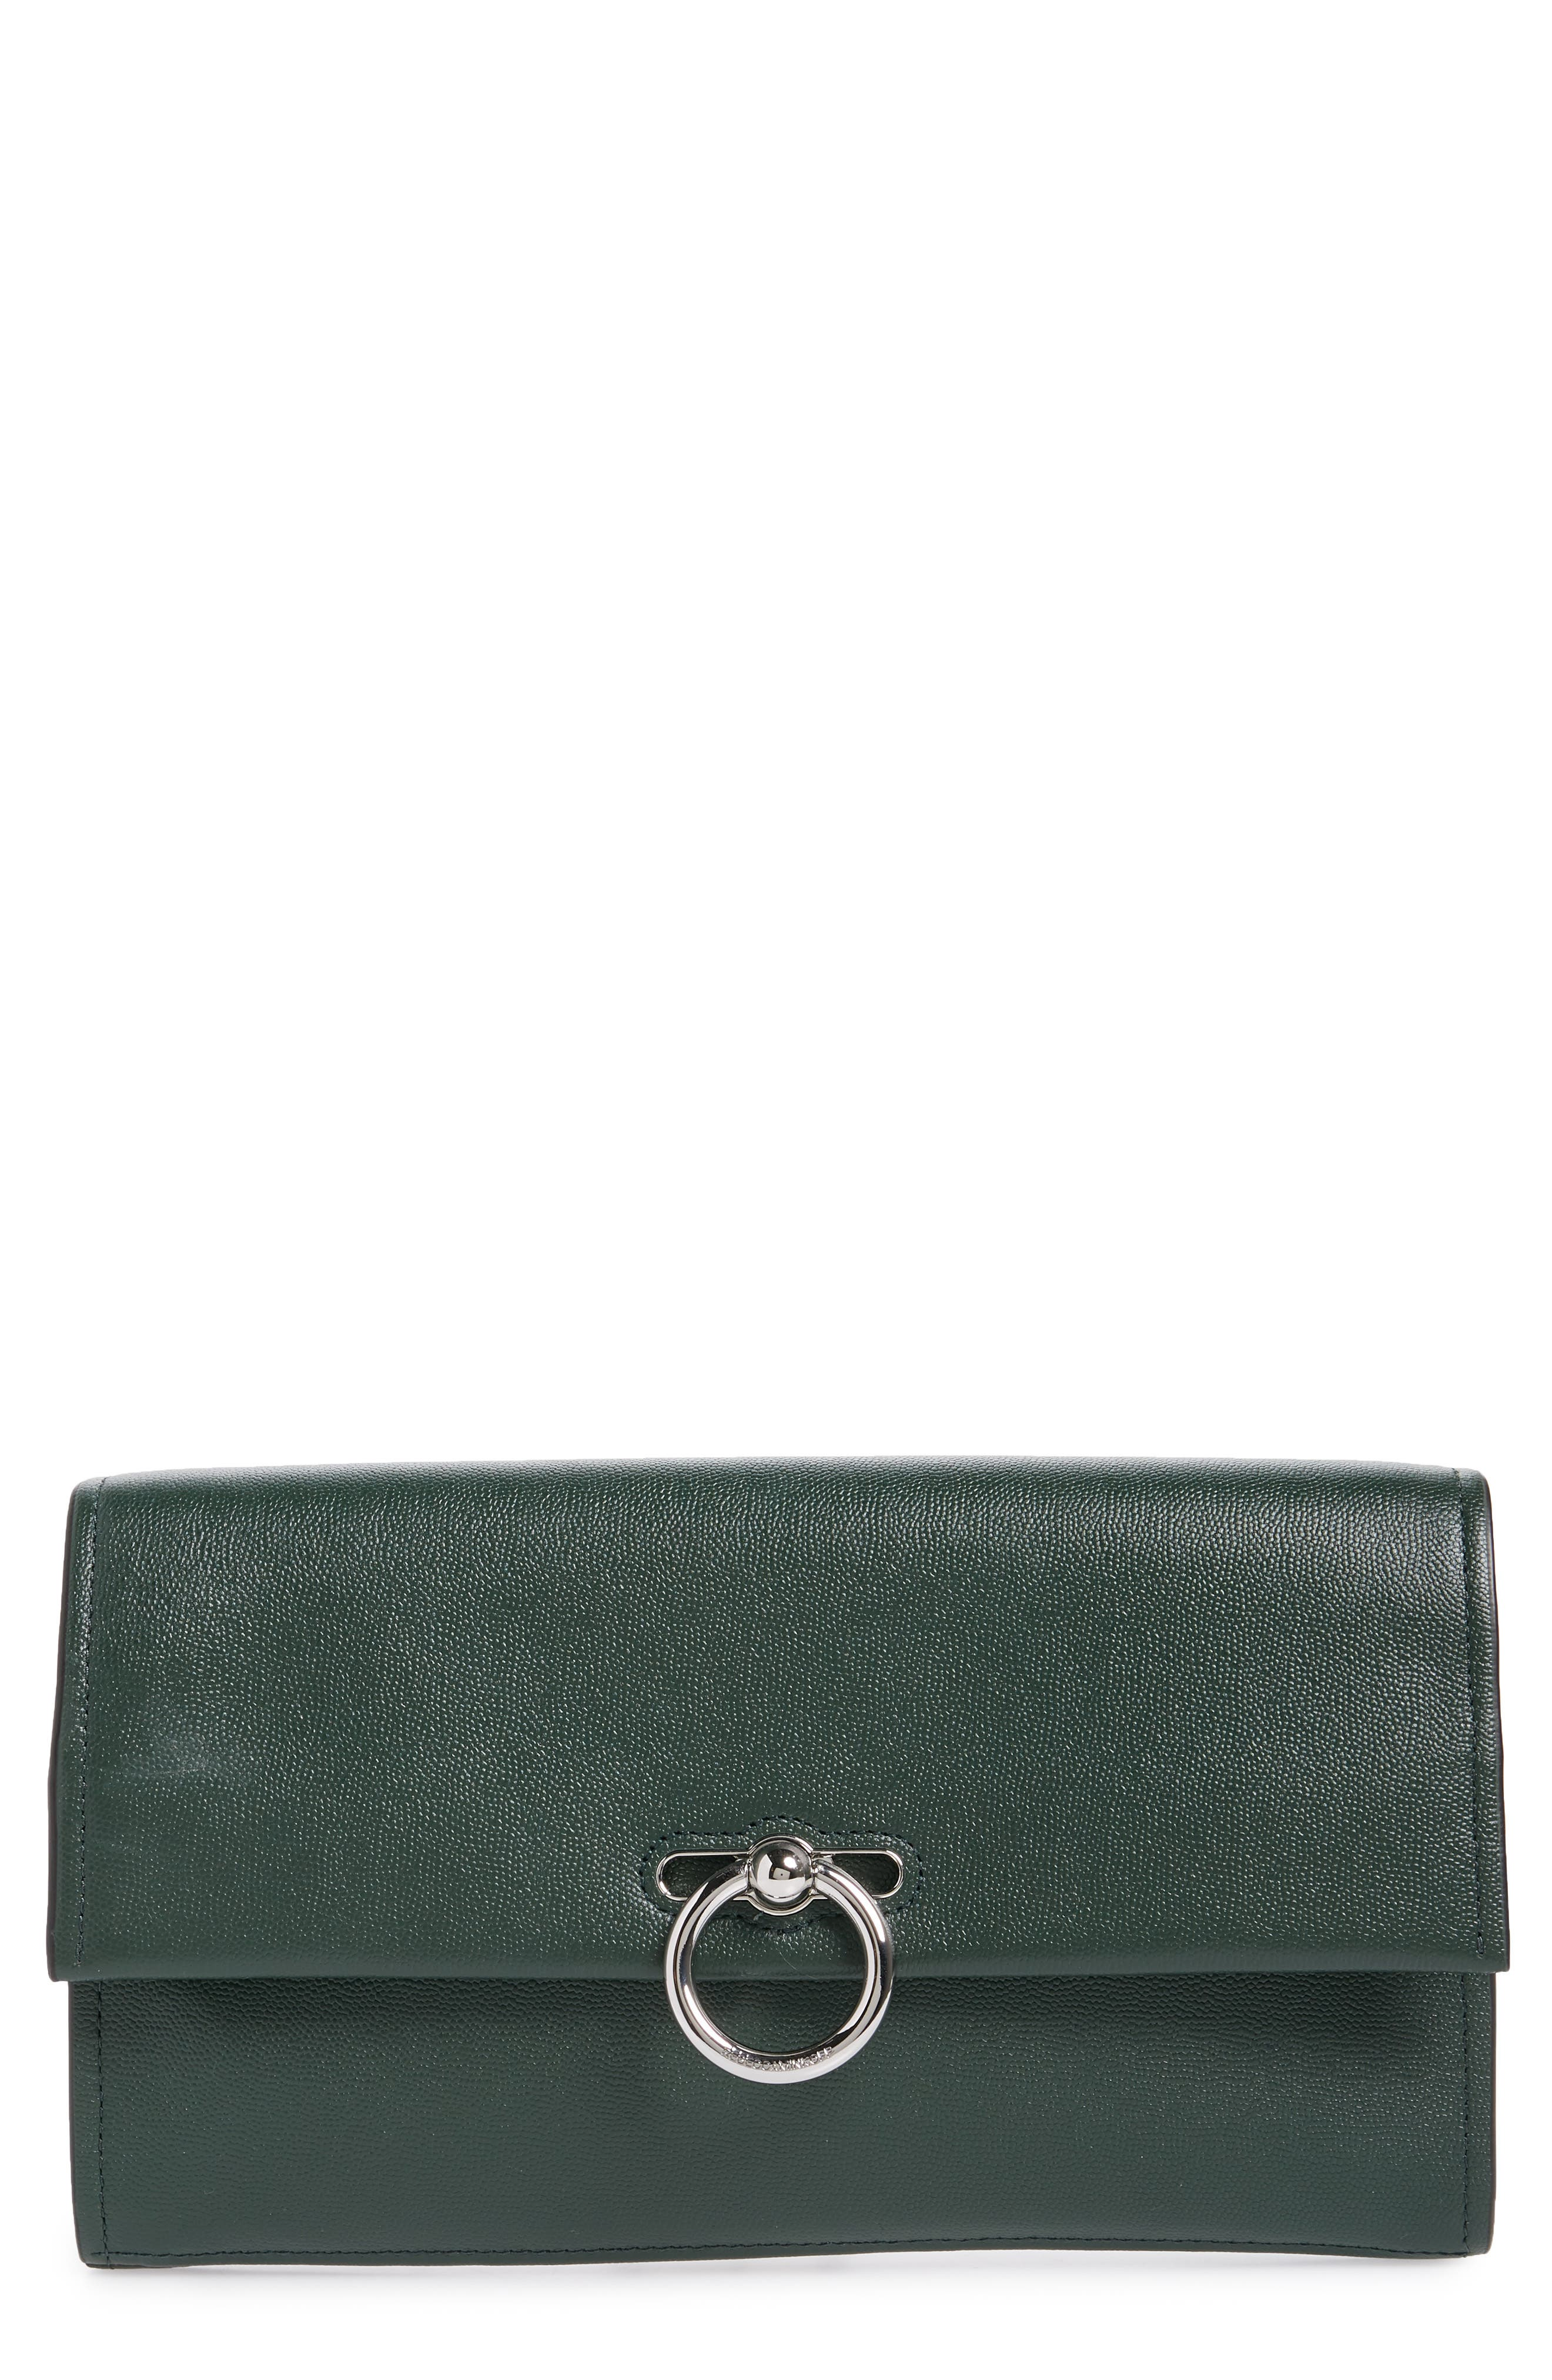 REBECCA MINKOFF, Jean Leather Clutch, Main thumbnail 1, color, 303